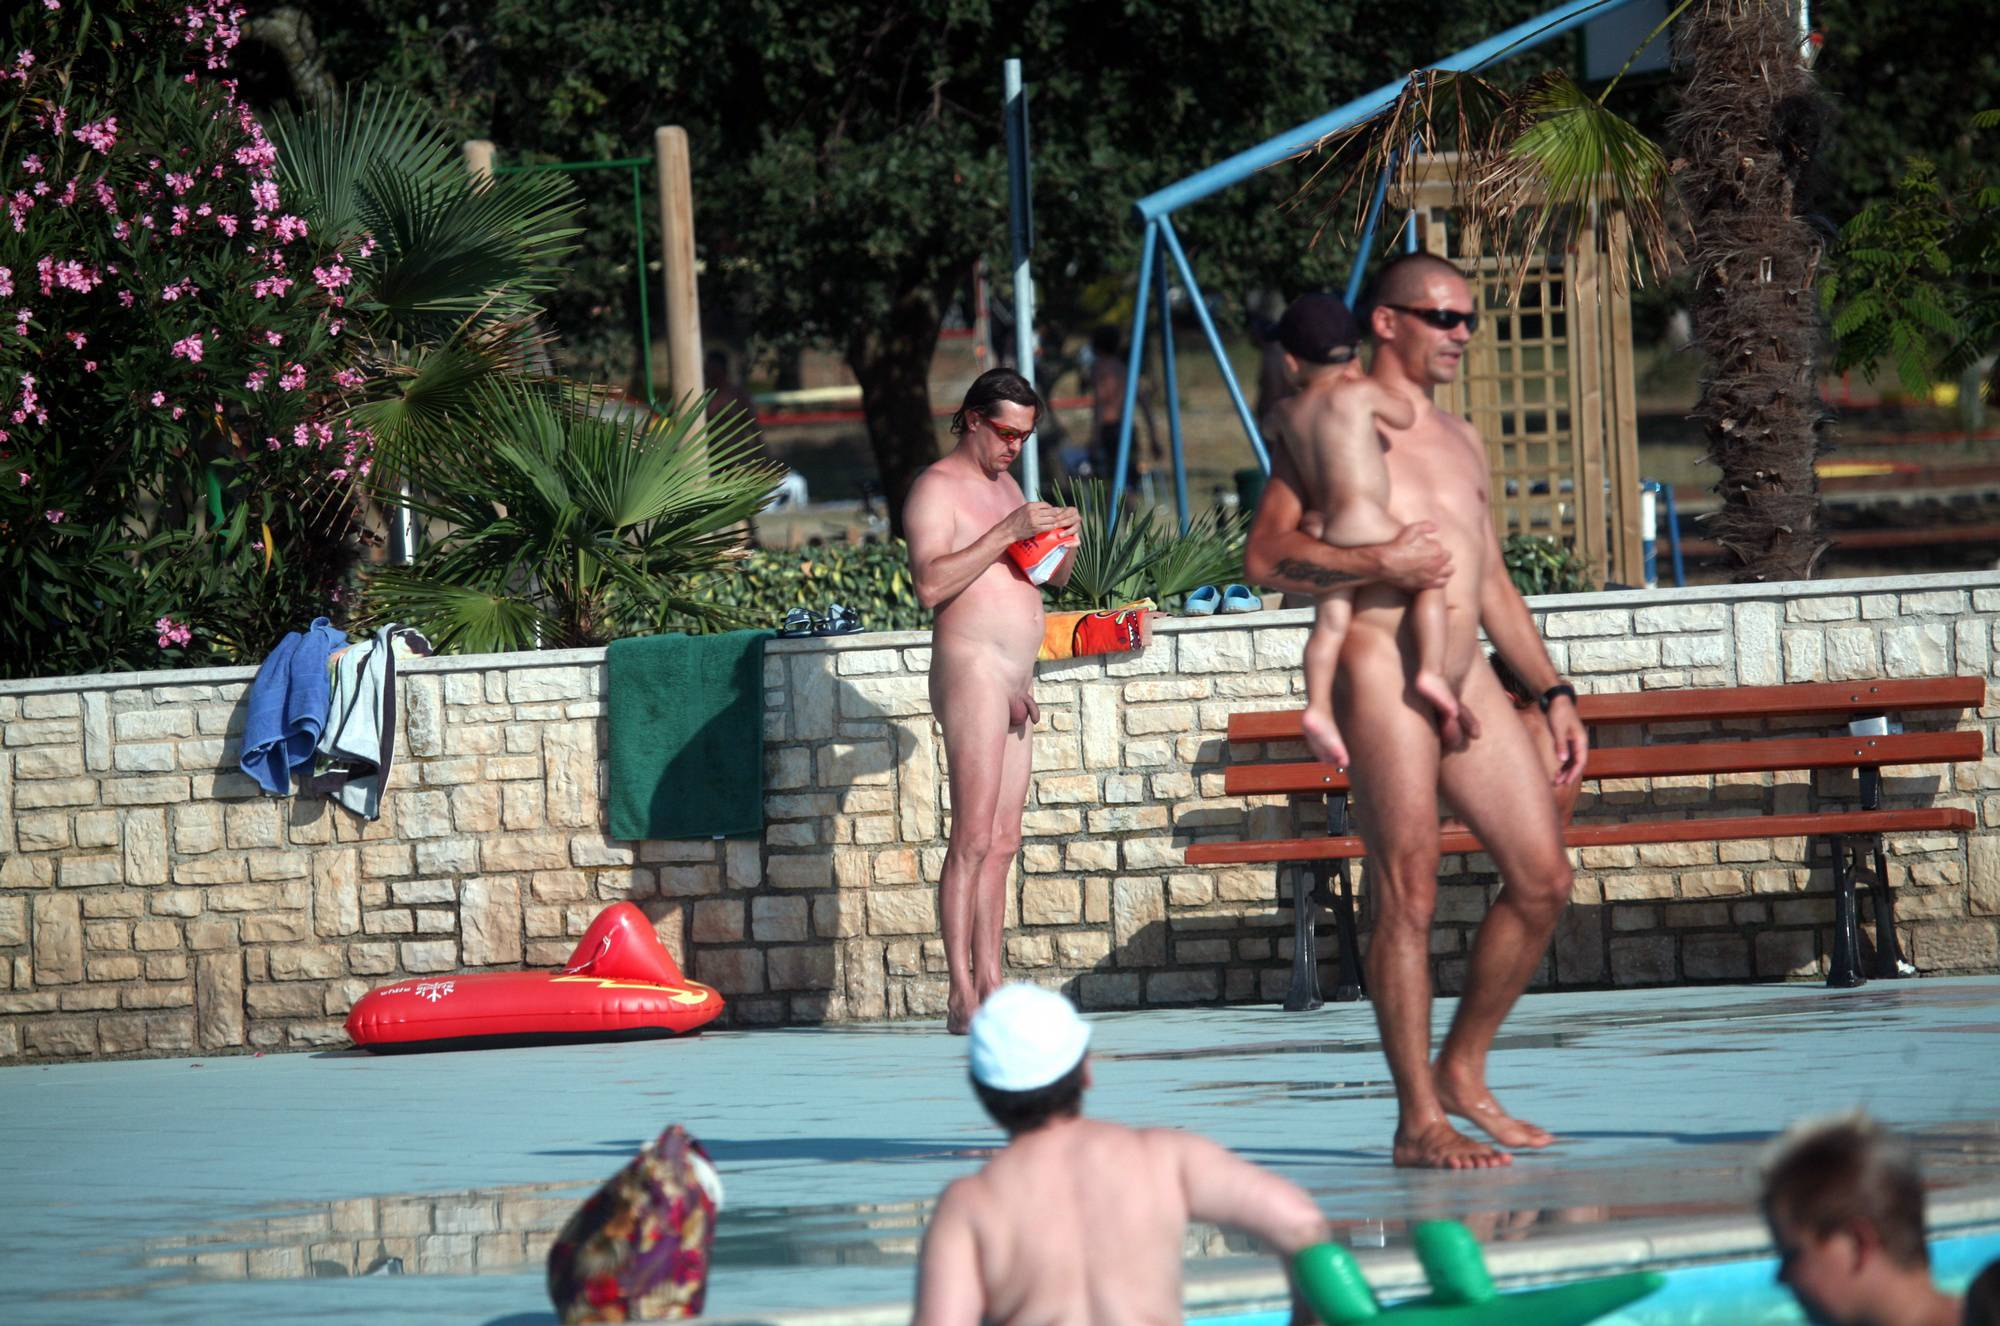 Pure Nudism Nudist Parents and Toddler - 2